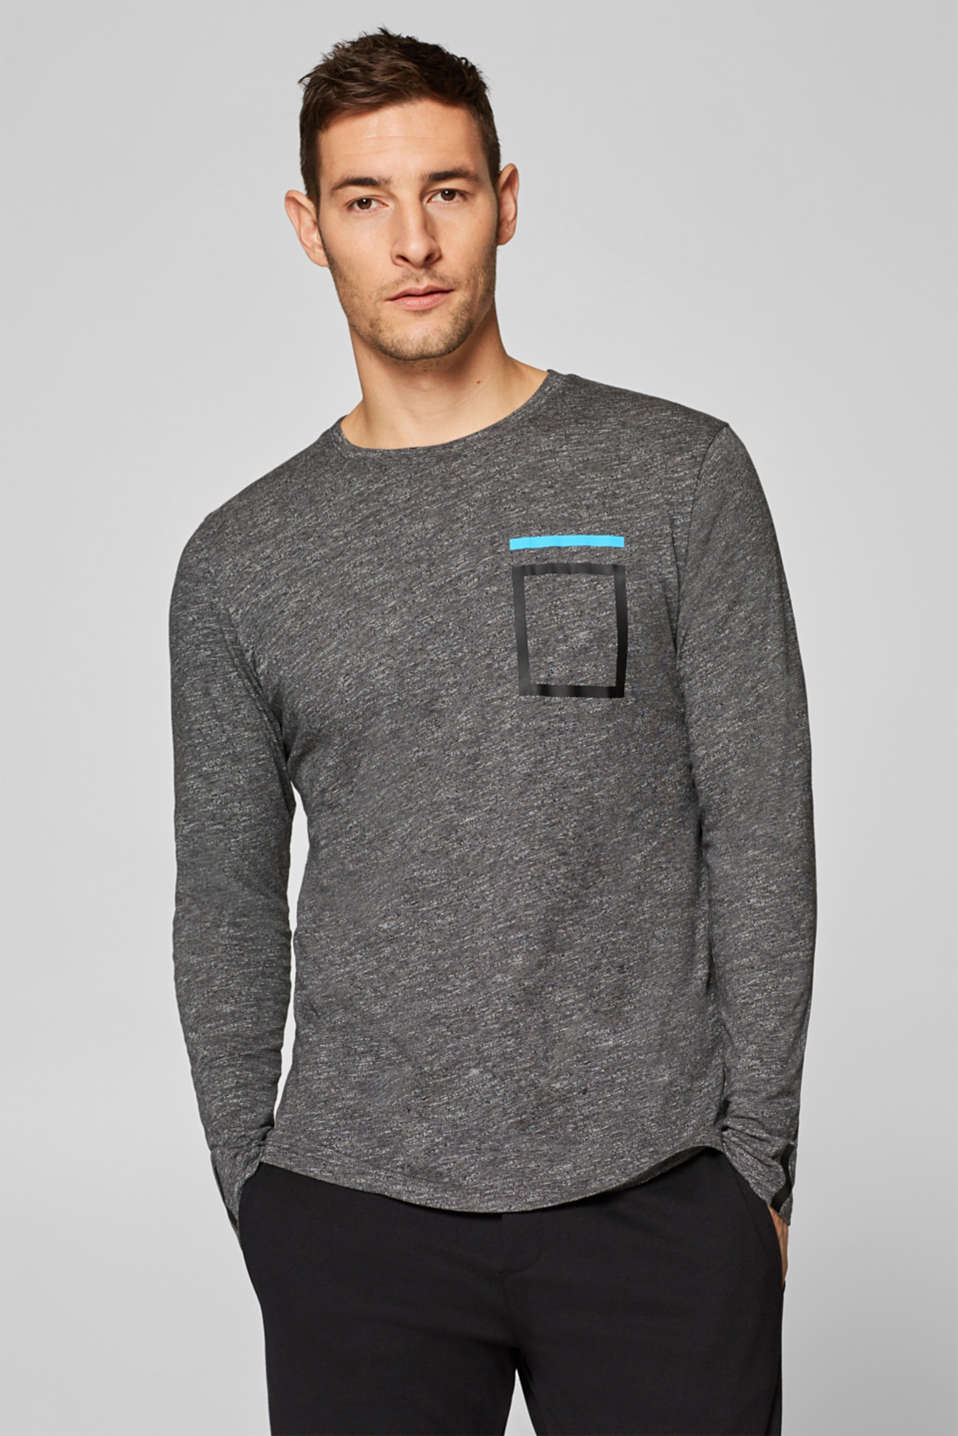 Esprit - Melange long sleeve blended cotton top